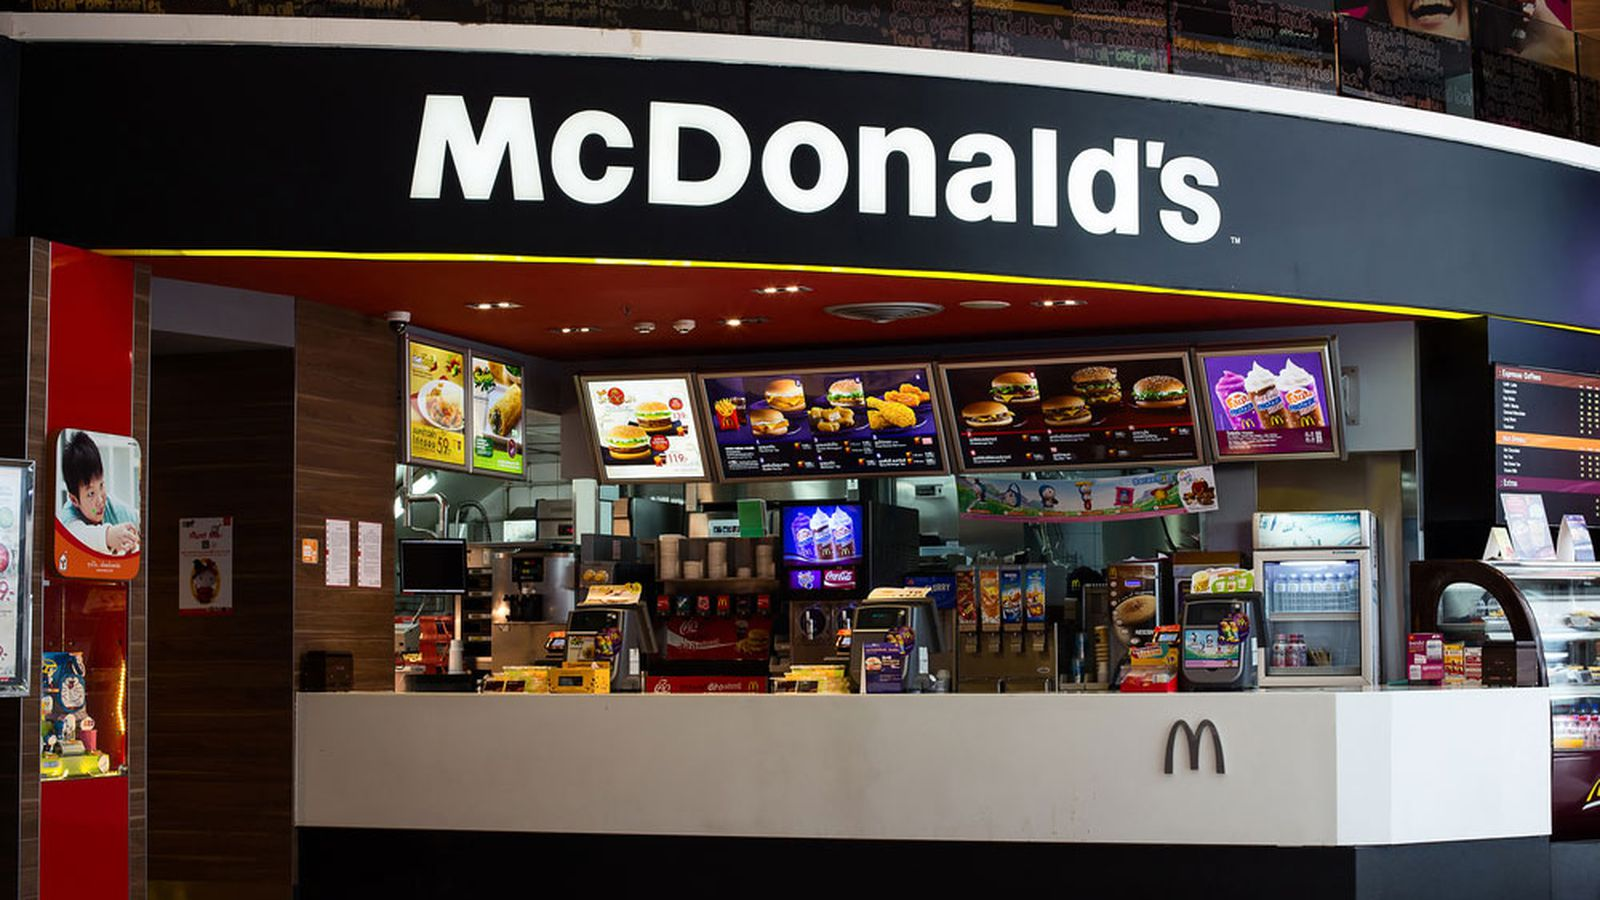 """mcdonald's my favorite restaurant Free essay: mcdonald's, my favorite restaurant mcdonald's is a fast food restaurant chain and """"has over 32,000 locations in more than 100 countries around."""